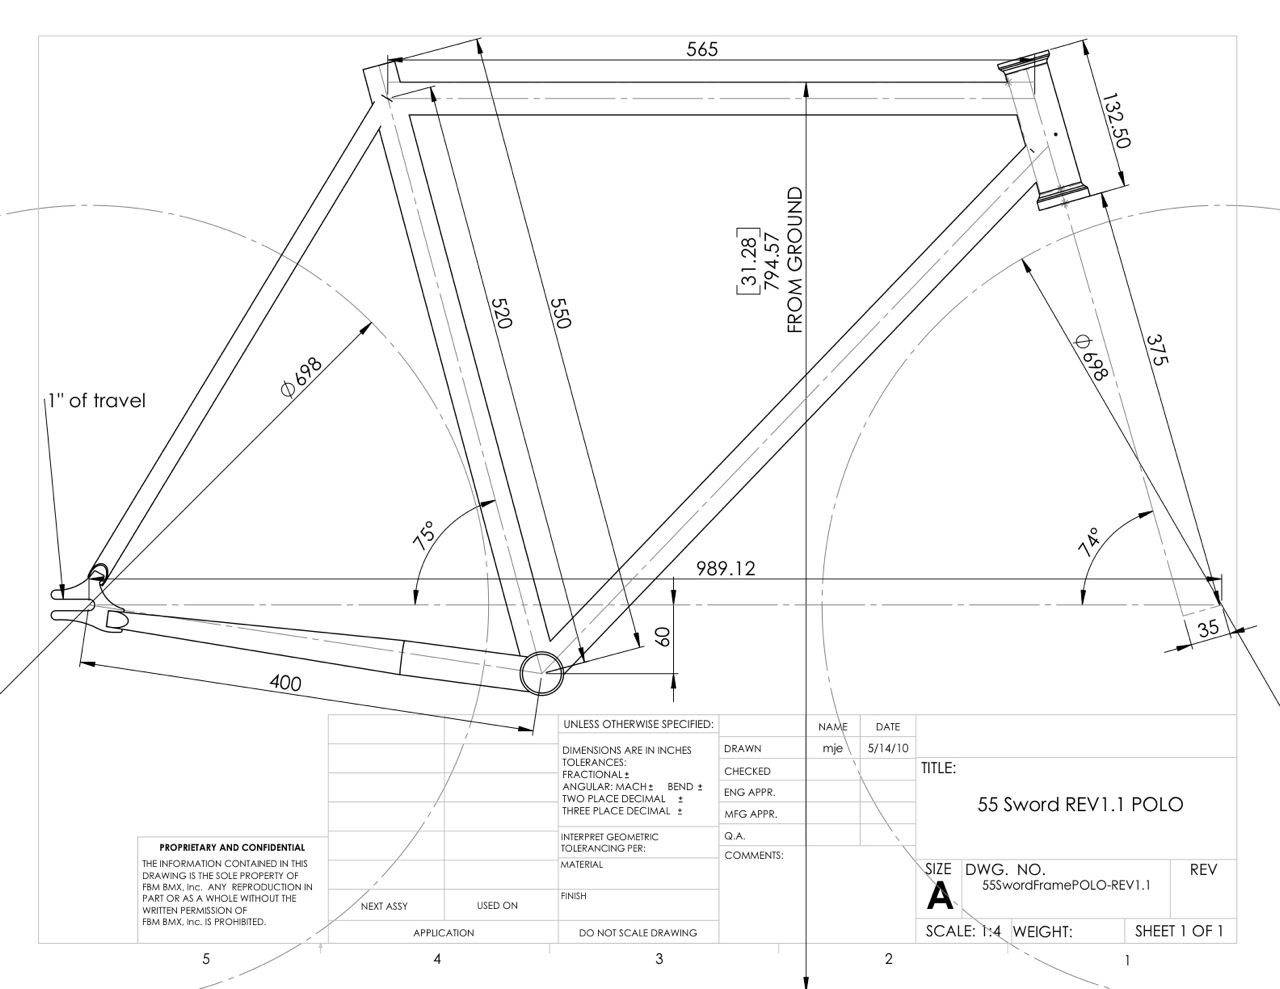 Bike Engineering Diagram Wiring A 230v Outlet Nissan 240sx